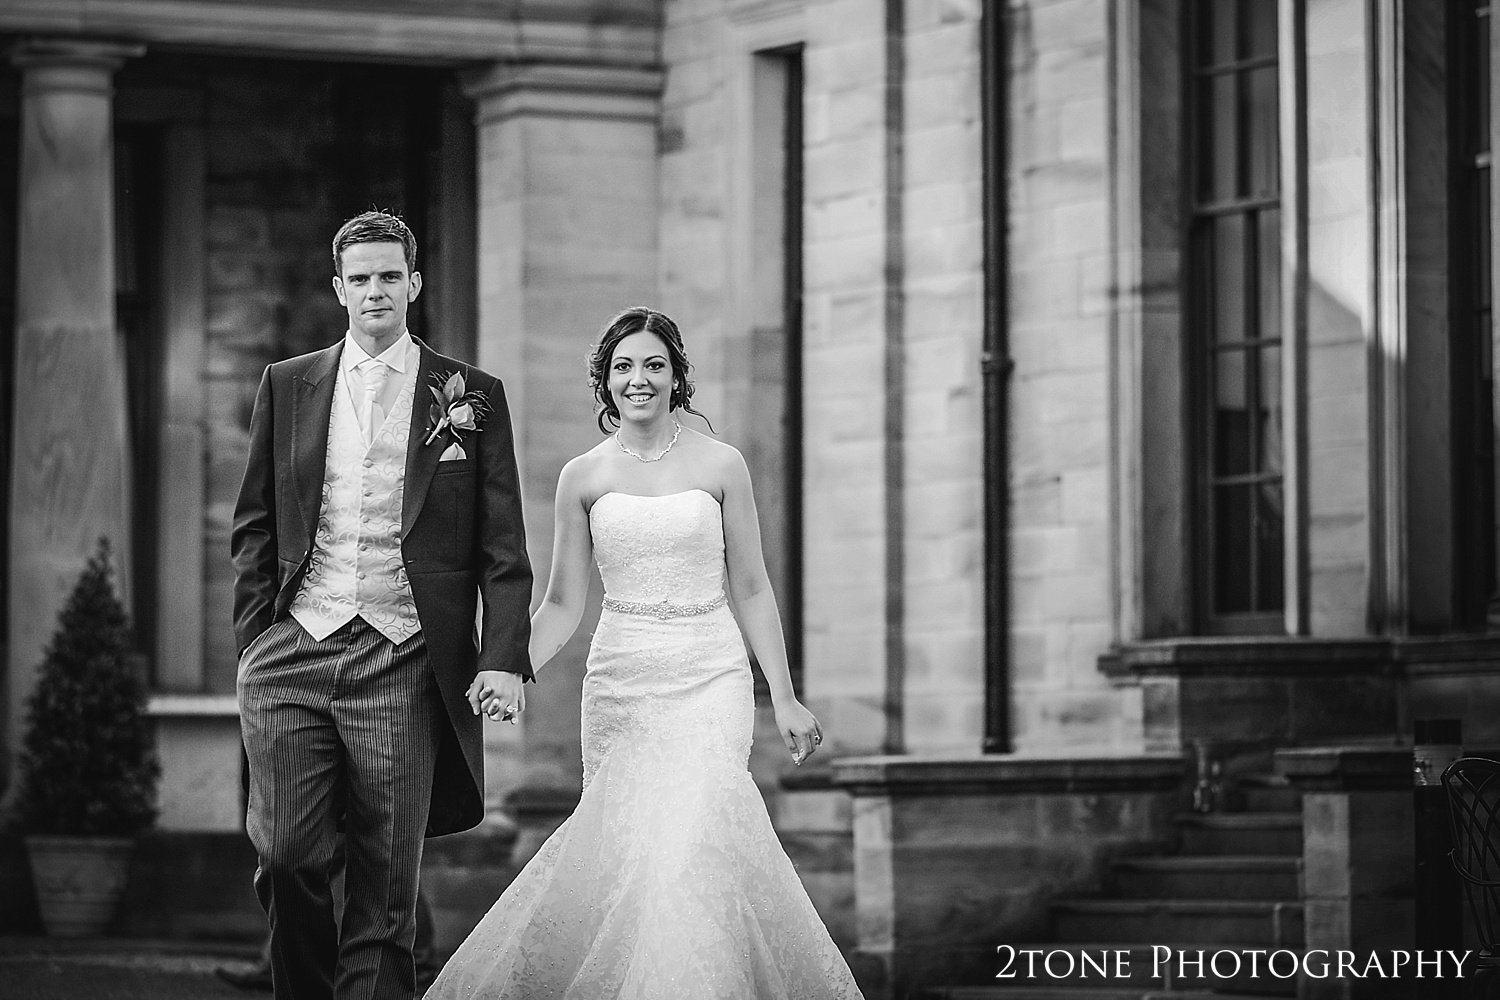 Creative wedding photography at Beamish Hall by Wedding Photographers based in Durham, www.2tonephotography.co.uk